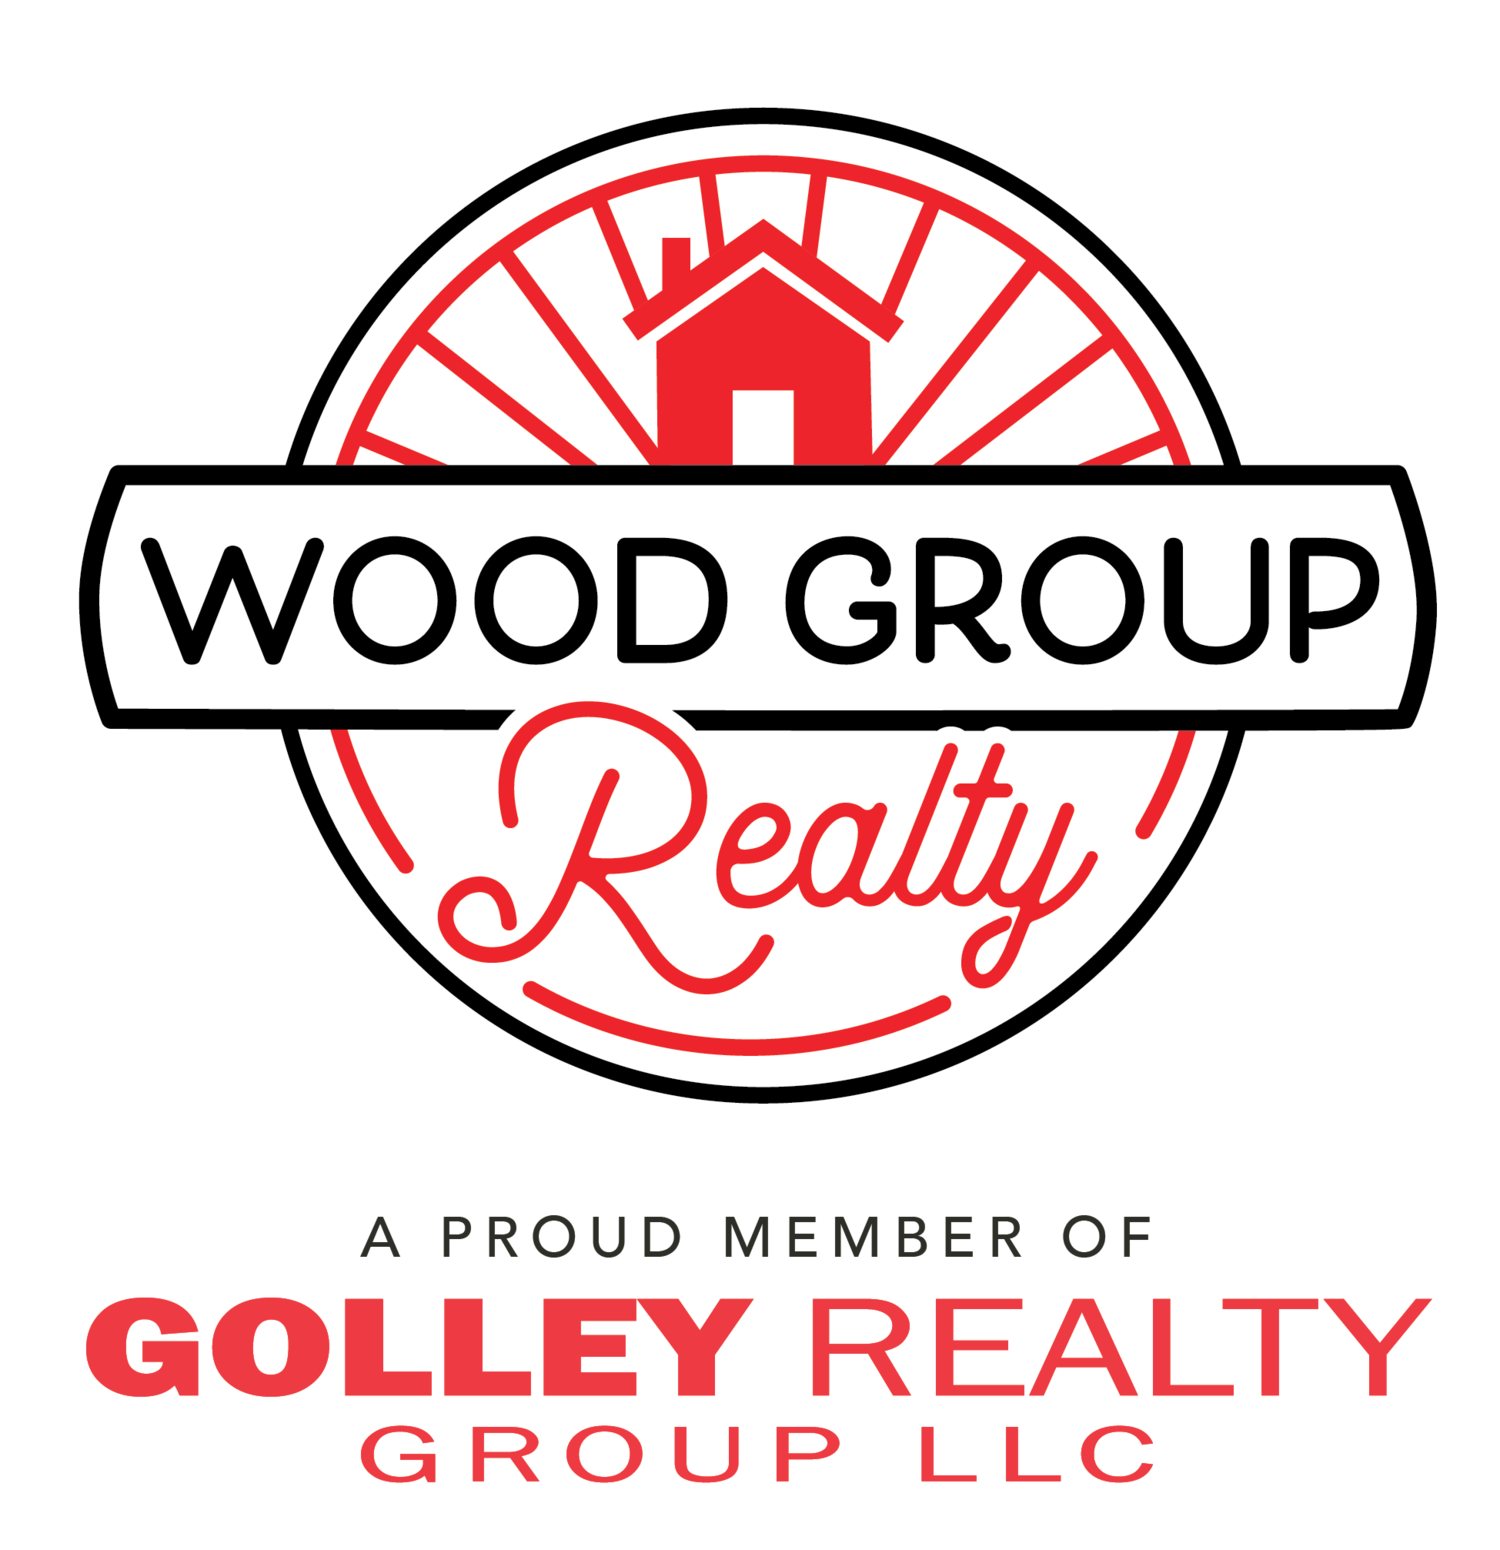 Wood Group Realty.